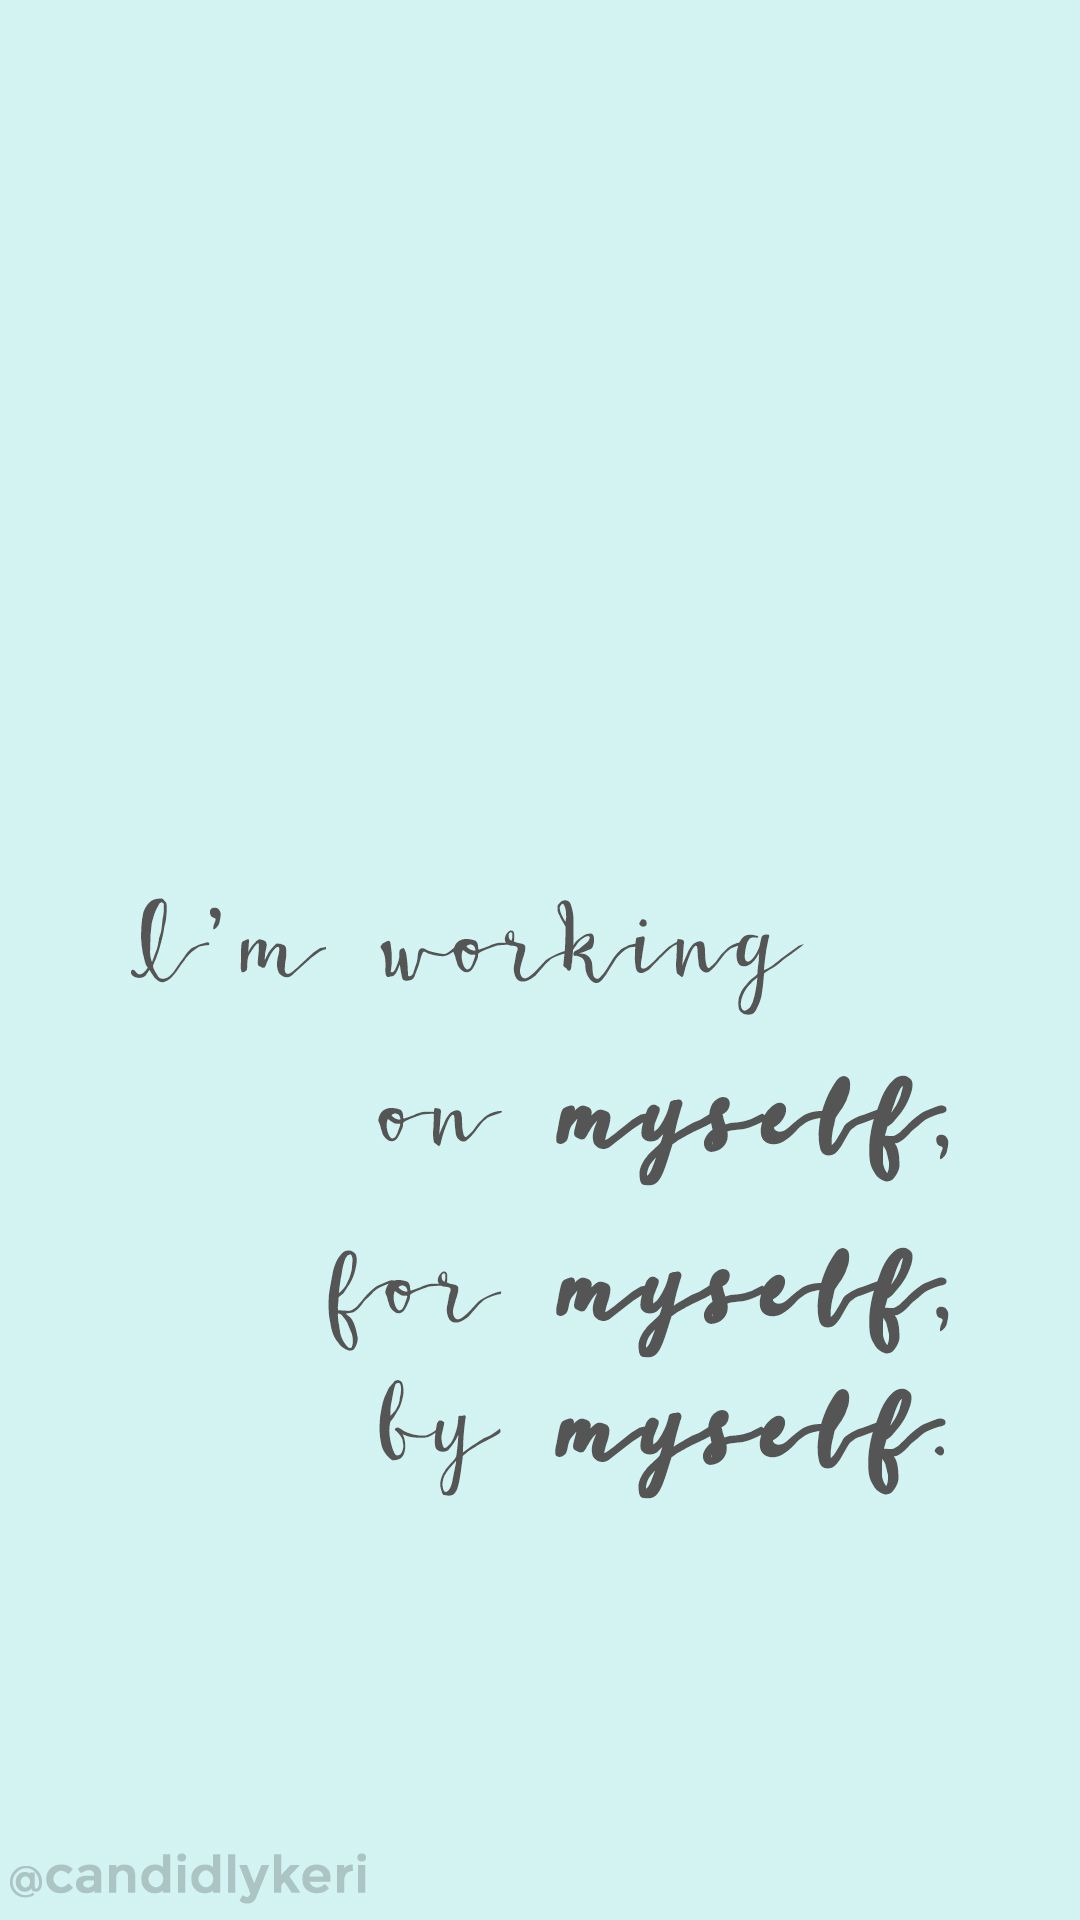 Im Working On Myself By Myself For Myself Motivation Inspirational Quote Wallpaper You Ca Positive Quotes Inspirational Quotes Wallpapers Quotes To Live By